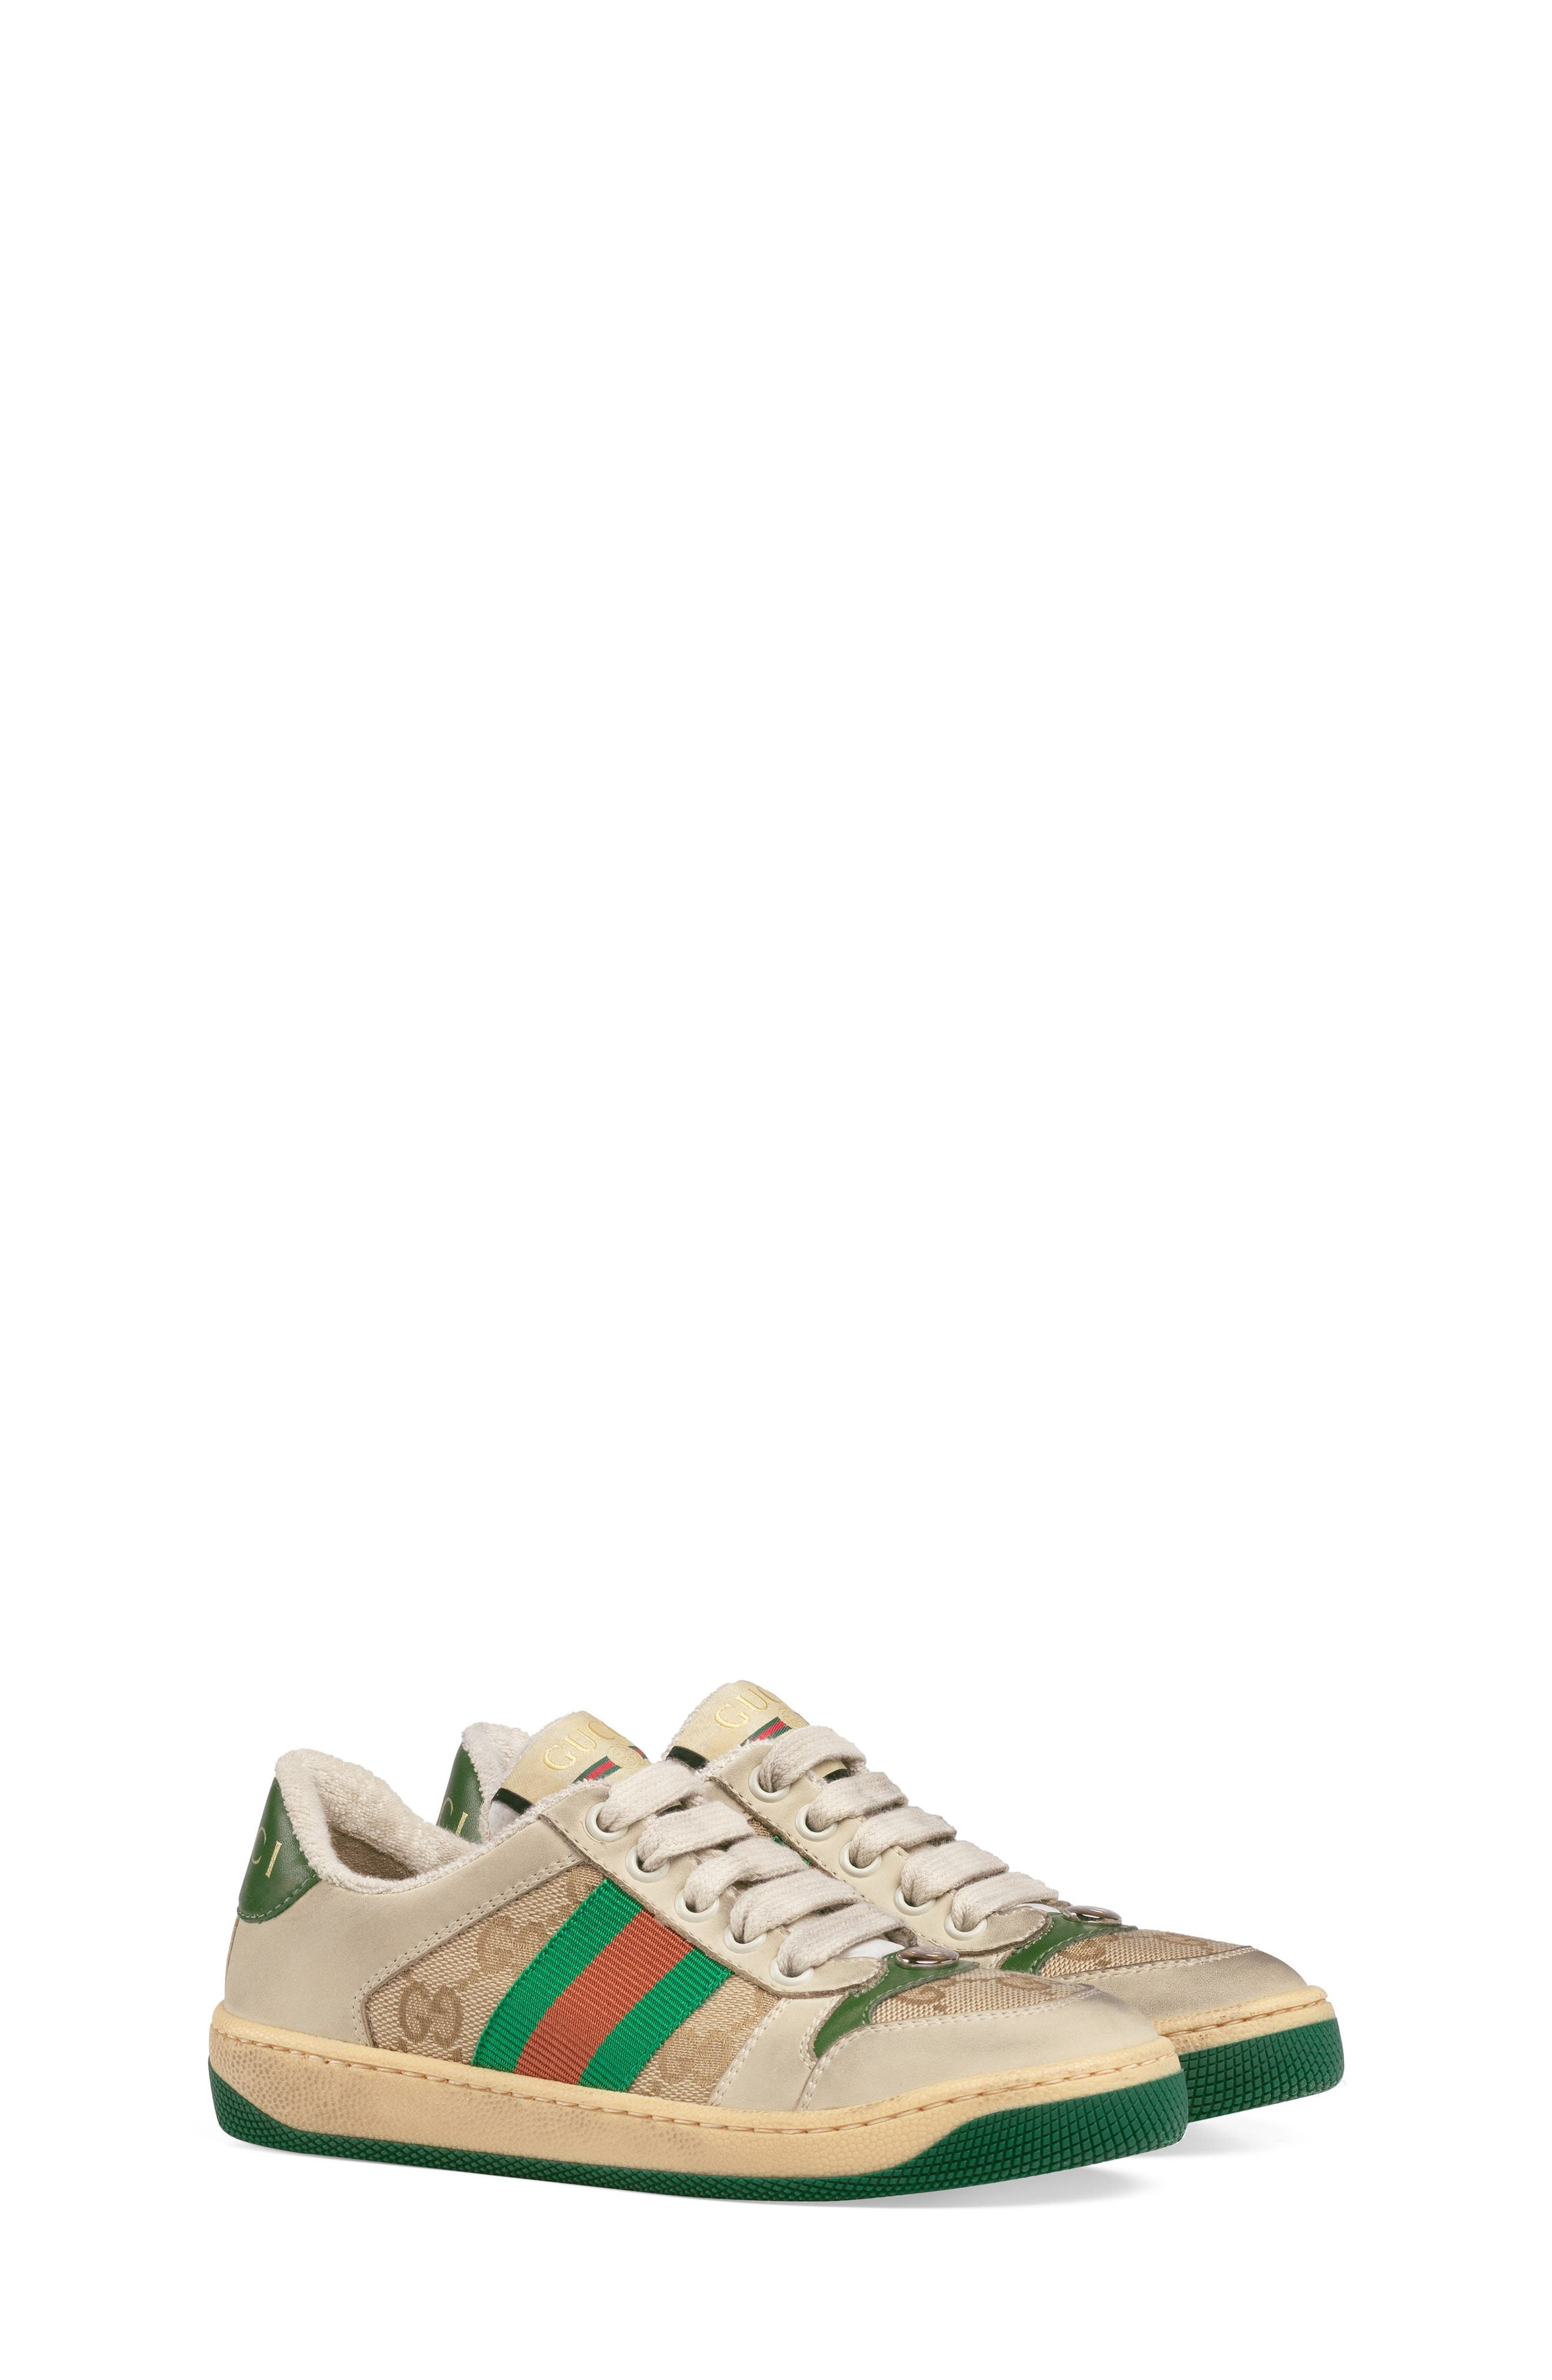 Kids' Gucci Shoes | Nordstrom